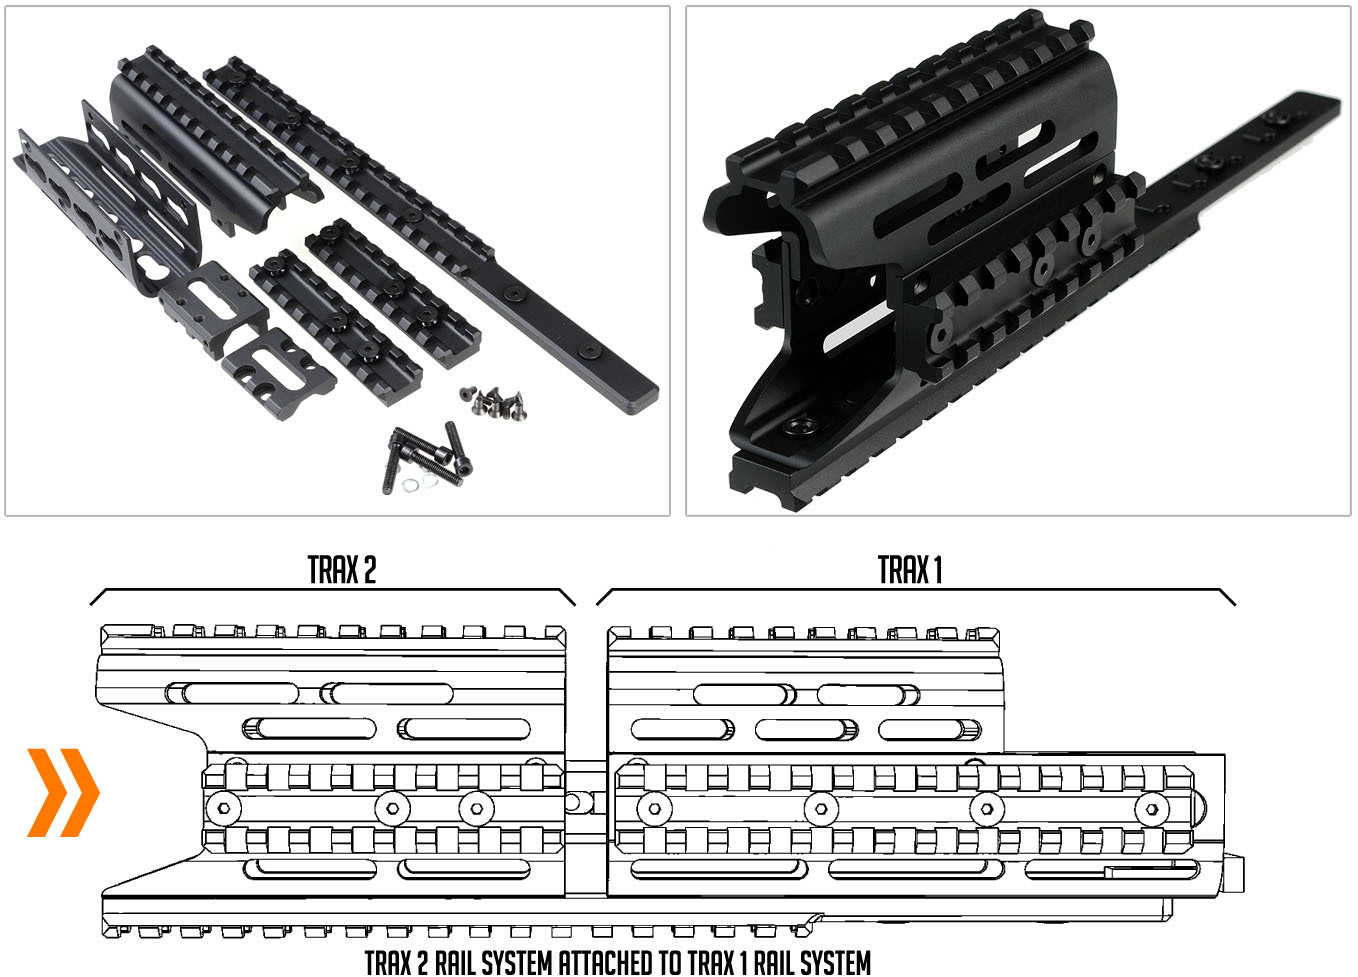 Strike Industries AK TRAX 1 KeyMod Modular Rail System Tactical Handguard for Kalashnikov AKM Rifle Carbine 3 Strike Industries AK TRAX 1/TRAX 2 KeyMod Modular Rail System/Tactical Handguard for Kalashnikov AKM Rifle/Carbine!